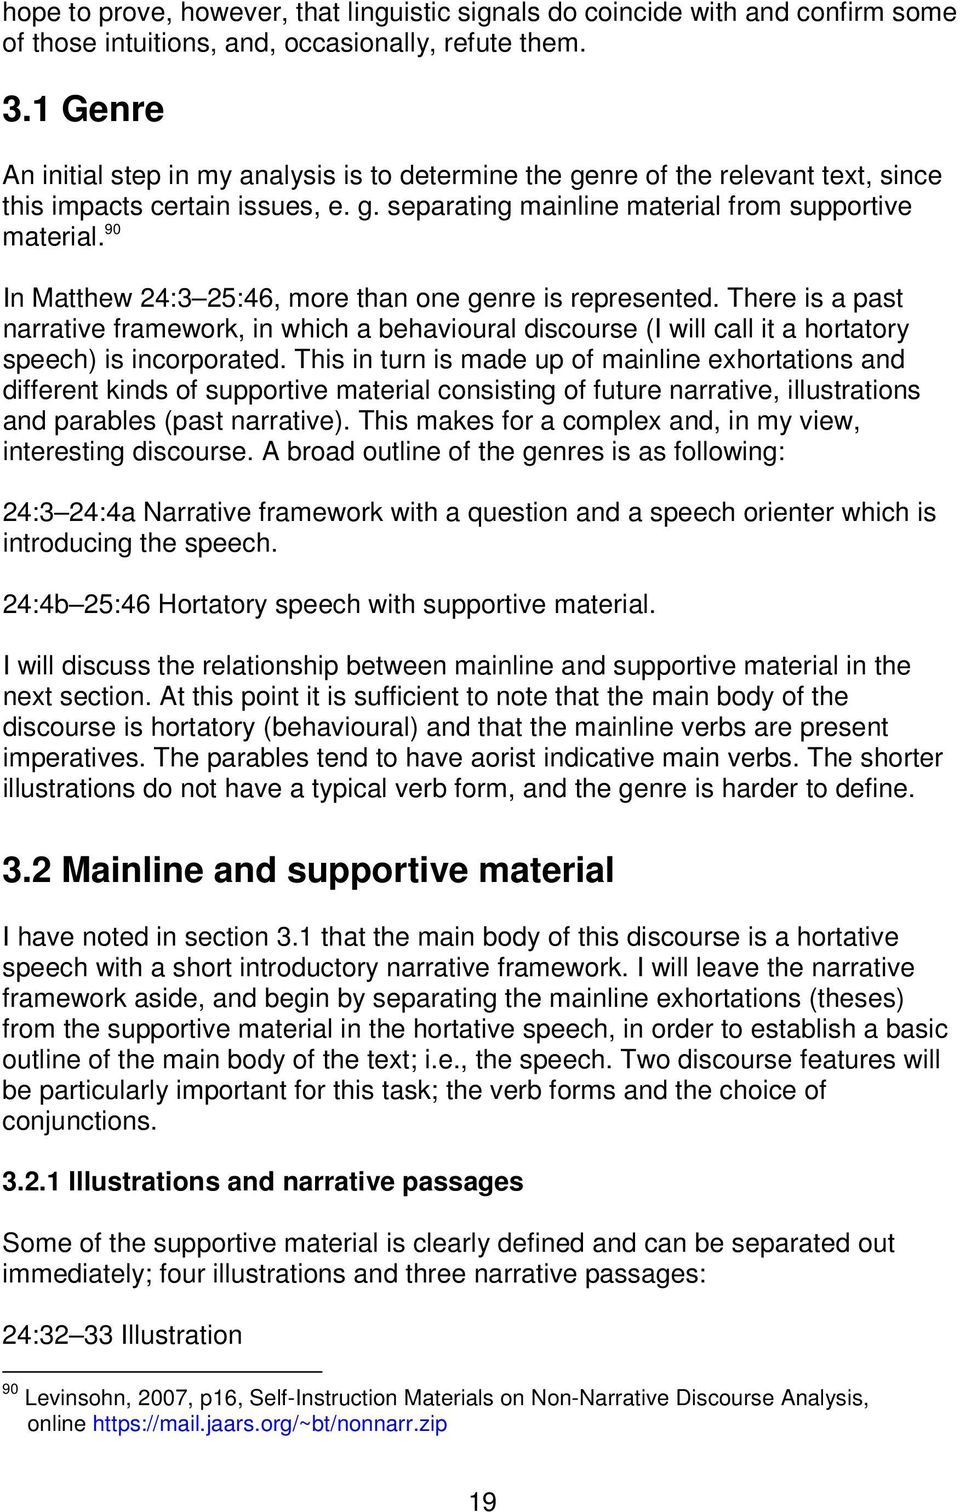 90 In Matthew 24:3 25:46, more than one genre is represented. There is a past narrative framework, in which a behavioural discourse (I will call it a hortatory speech) is incorporated.